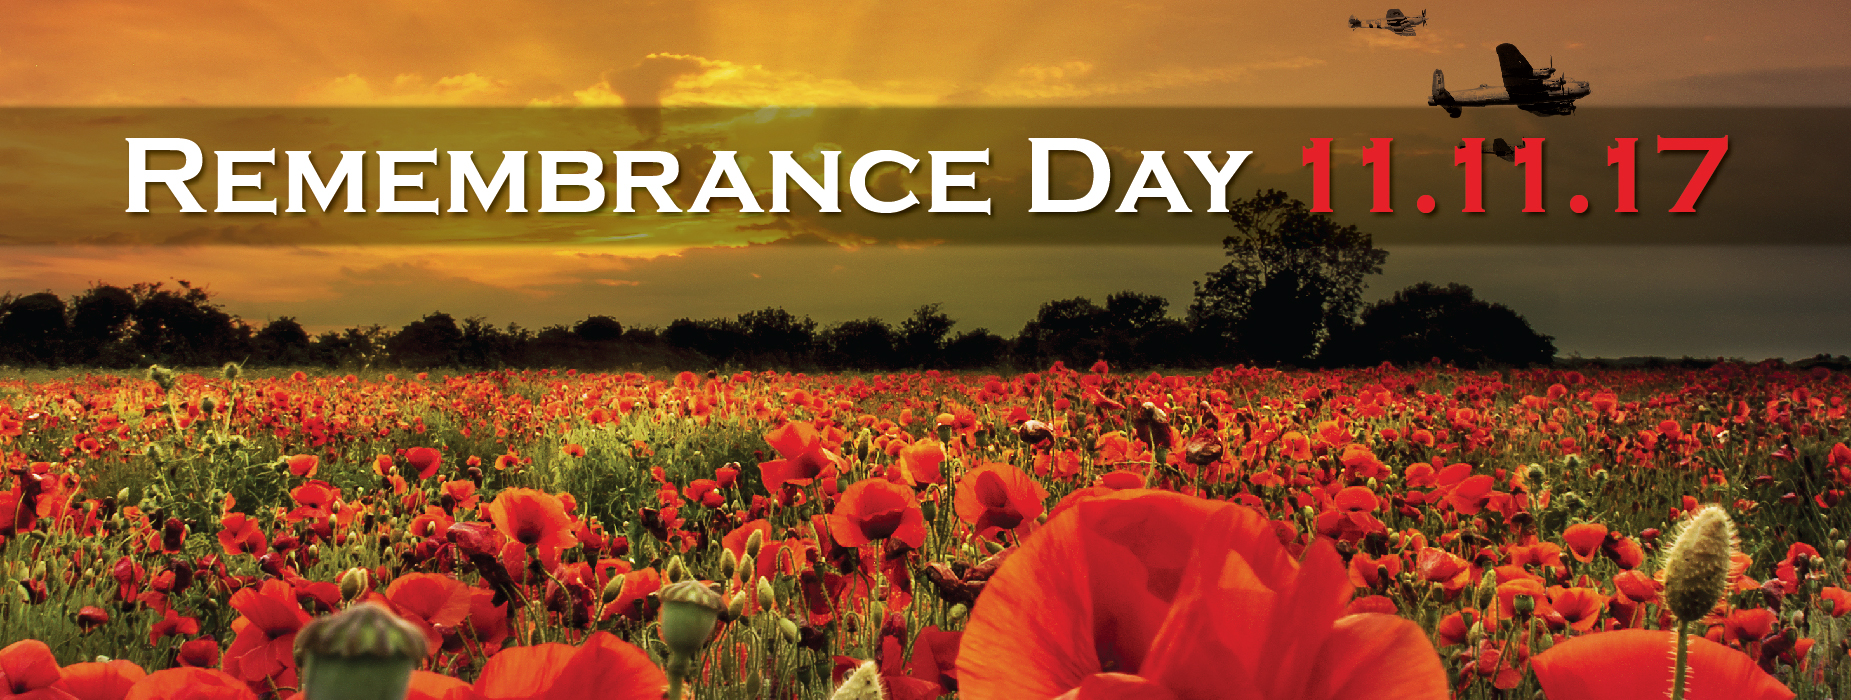 rememberance day Memorial day history three years after the civil war ended, on may 5, 1868, the head of an organization of union veterans the grand army of the republic (gar) established decoration day as a time for the nation to decorate the graves of the war dead with flowers.